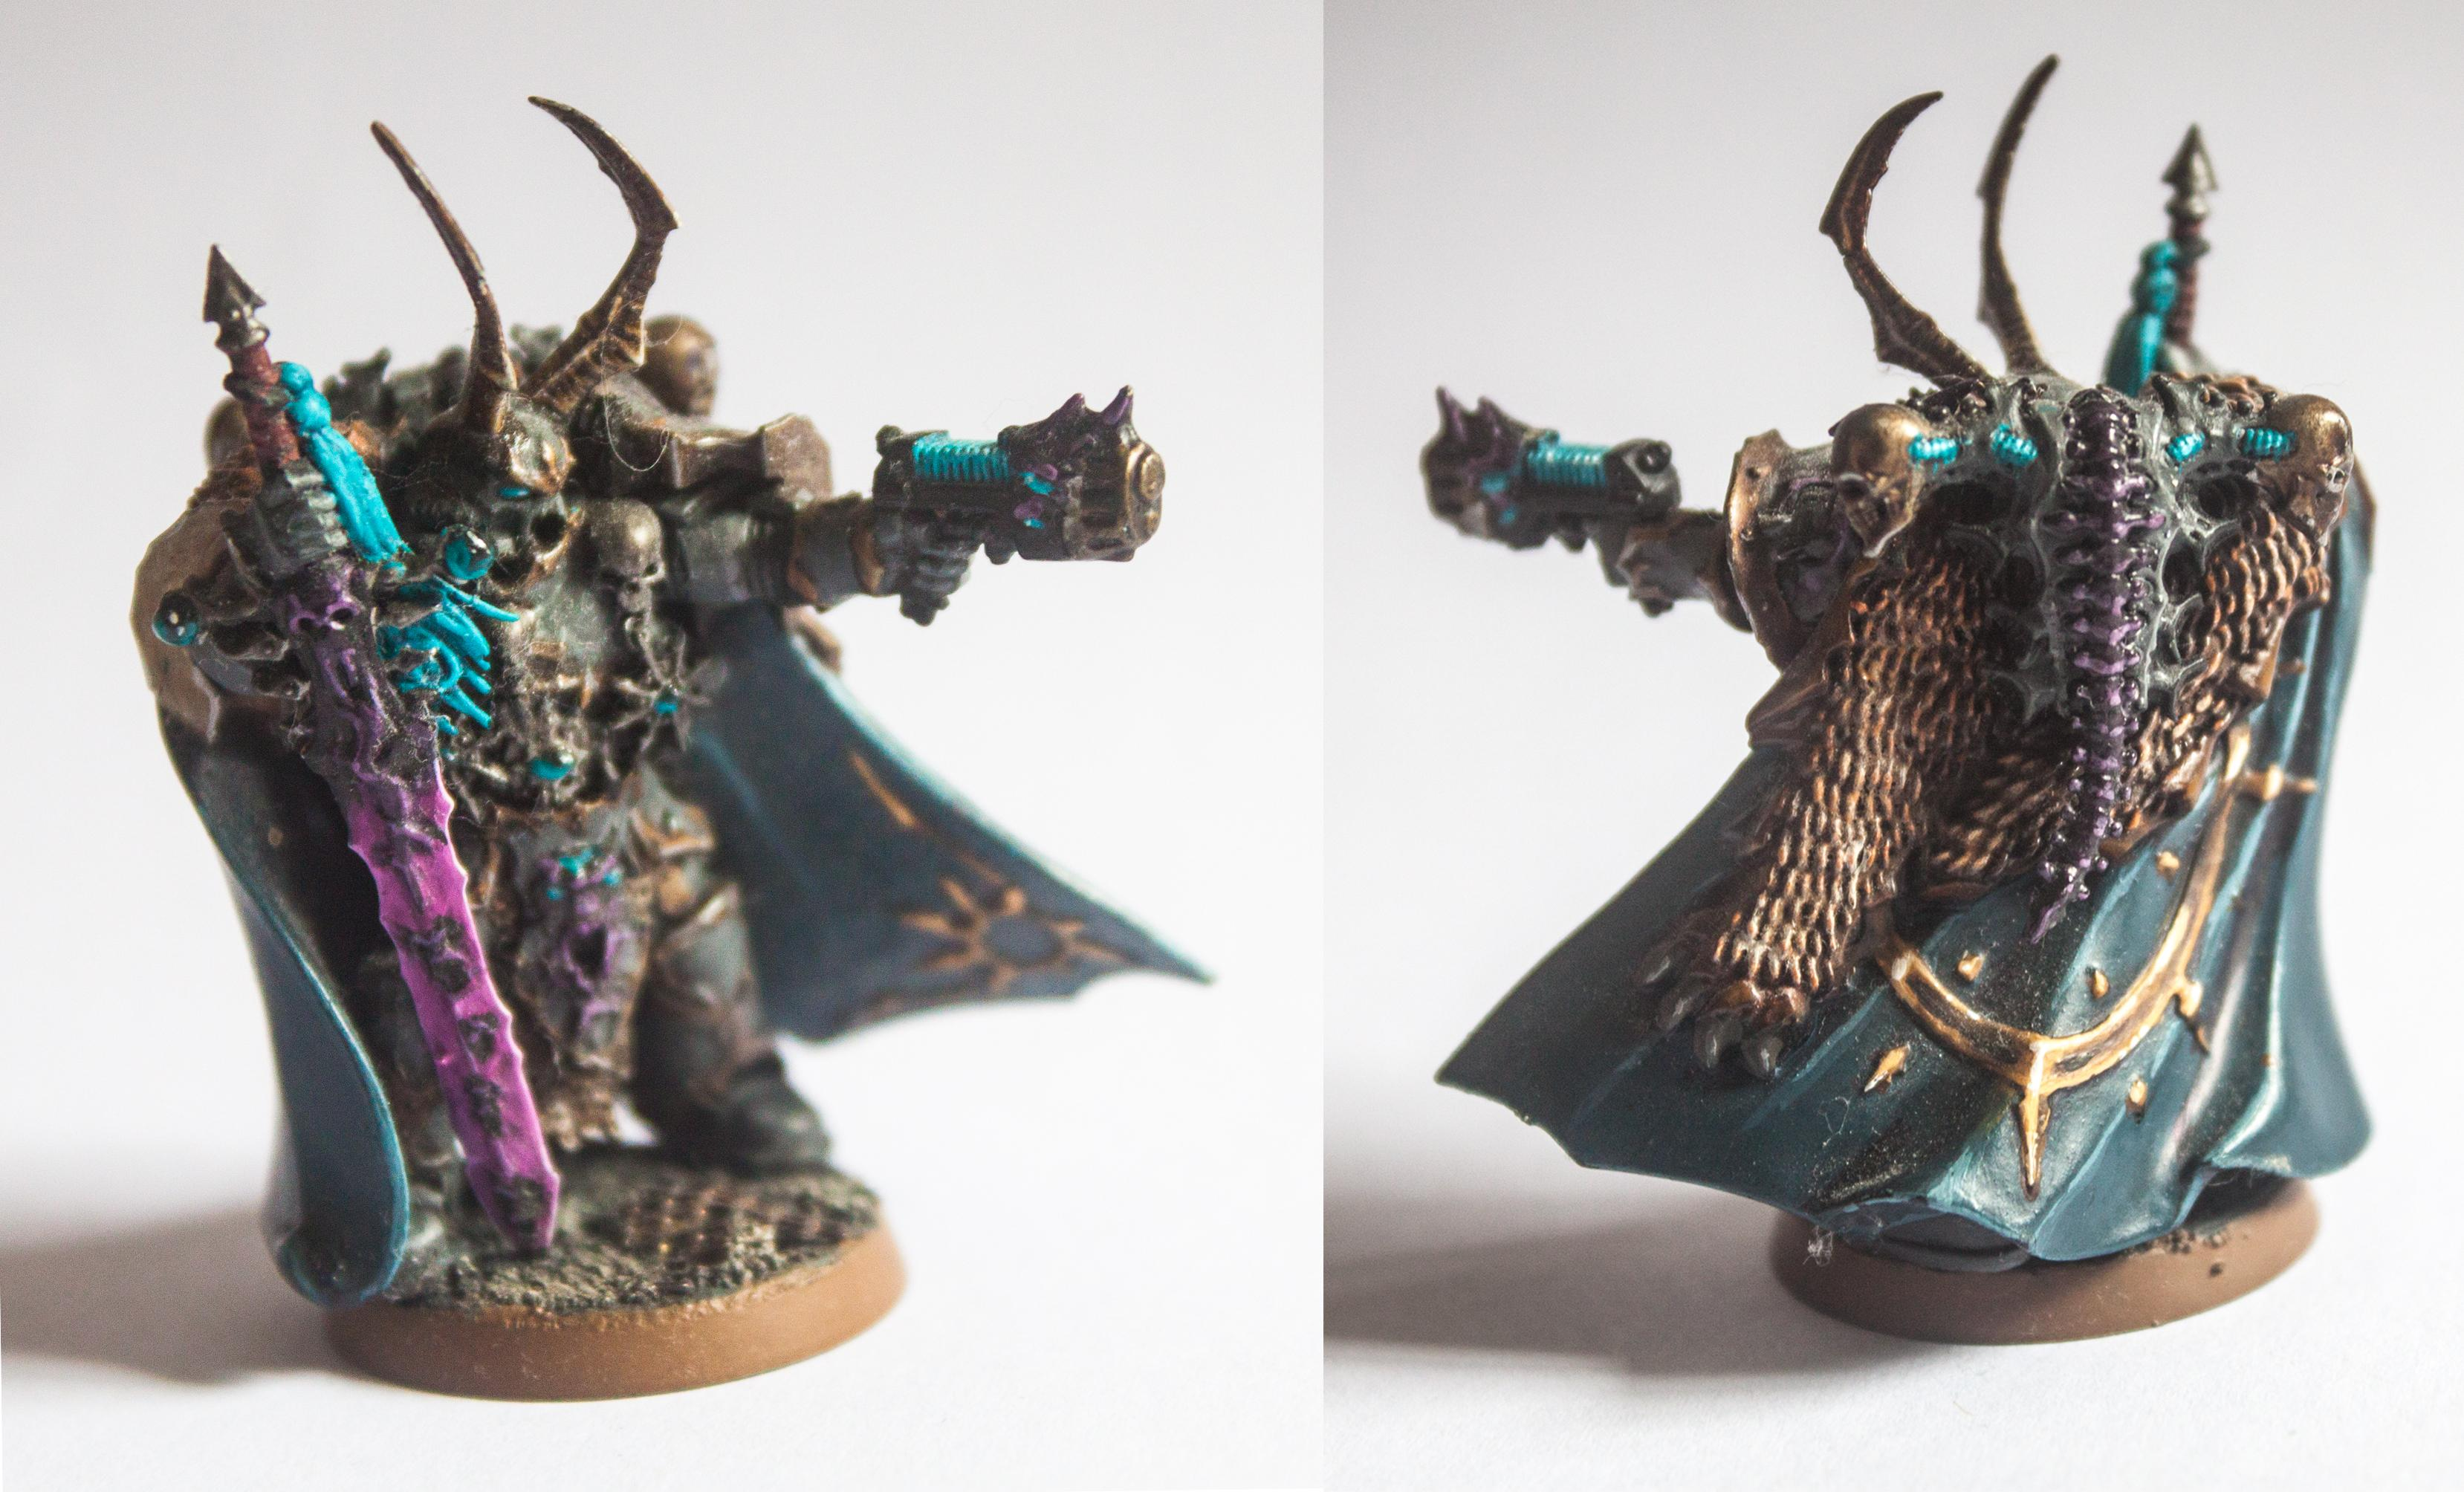 Chaos, Chaos Lord, Chaos Space Marines, Crystals, Dark Vengance, Lord, Non-Metallic Metal, Space Marines, Touch Of Chaos, Urban Base, Warhammer 40,000